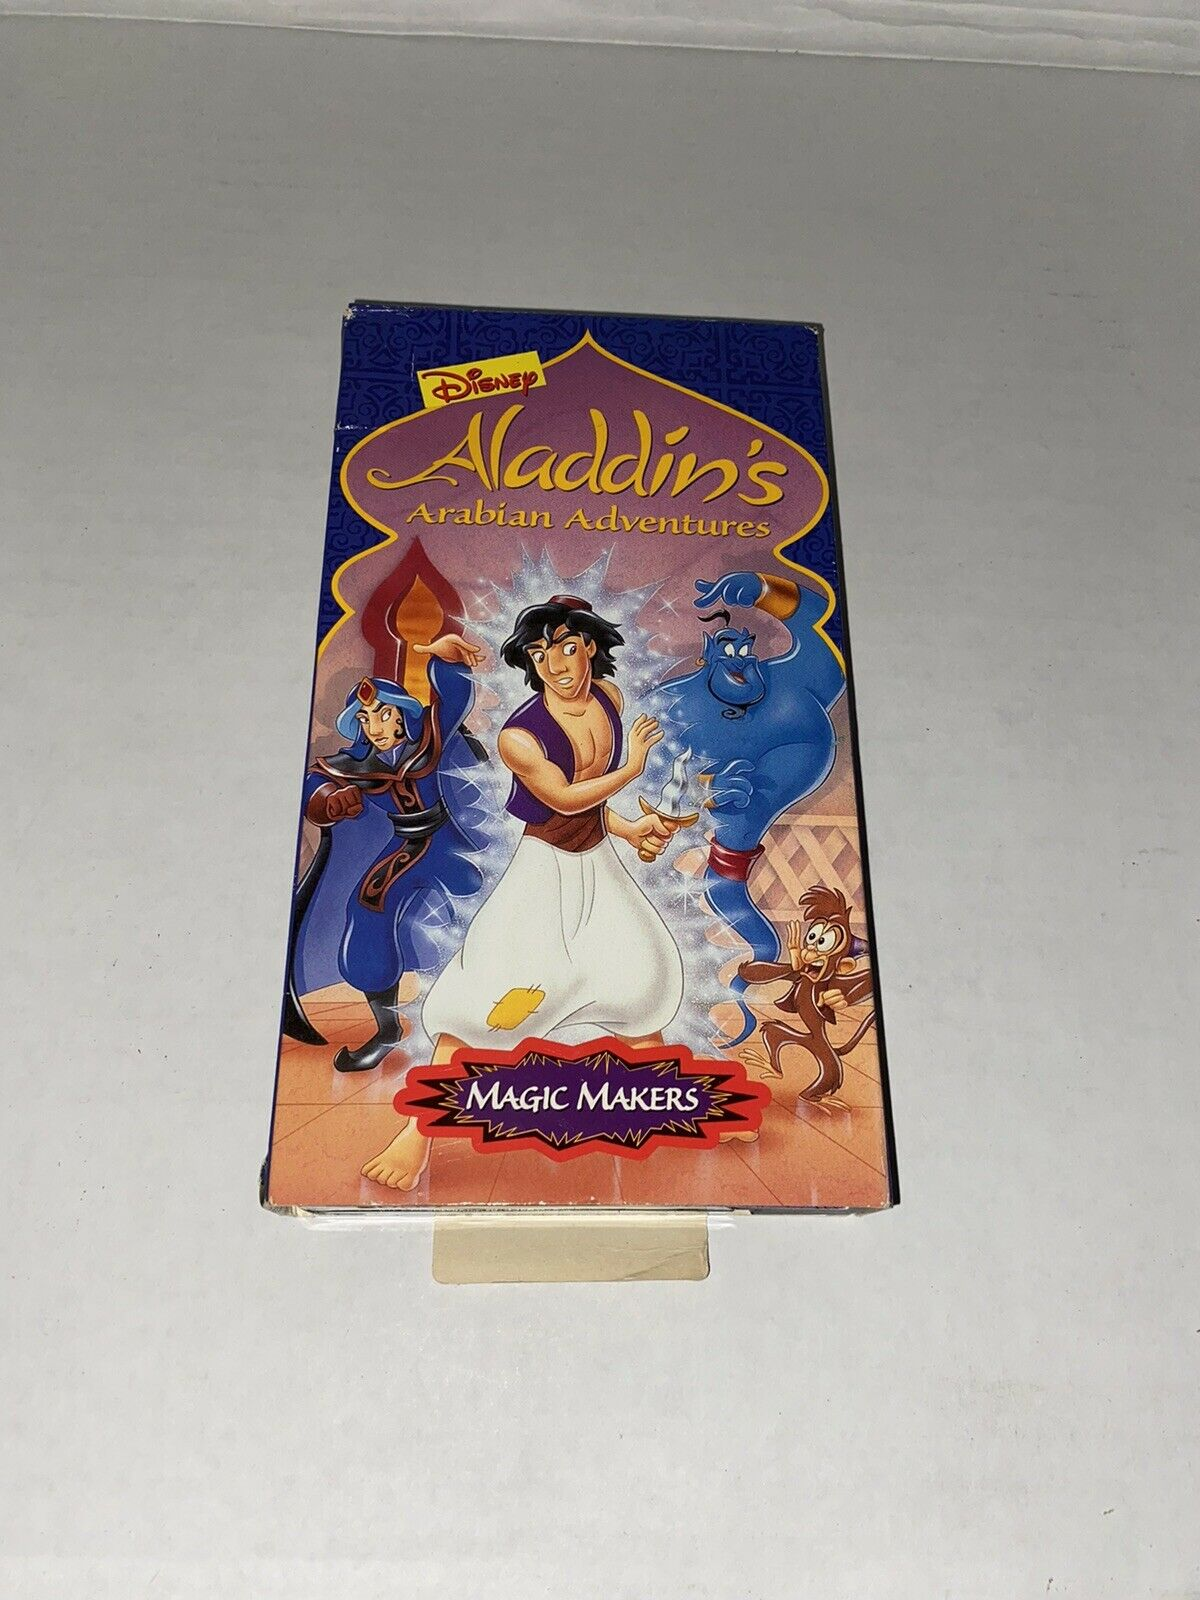 Aladdin's Arabian Adventures: Magic Makers (1995 VHS)